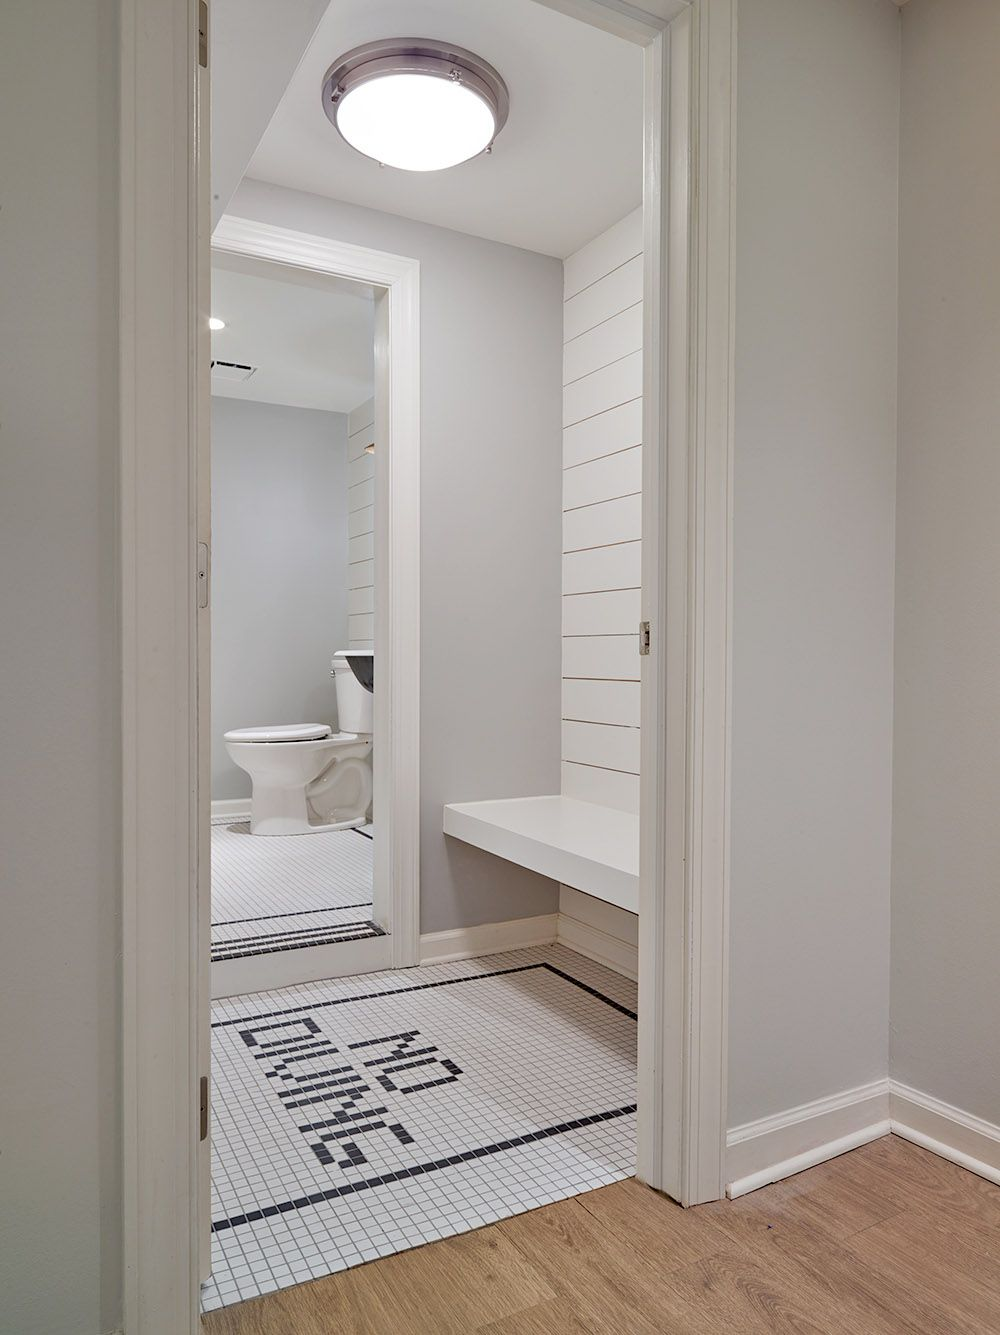 Locker room bathroom design - Nautical Changing Room For Pool House With White Ship Lap And Fun No Diving Floor